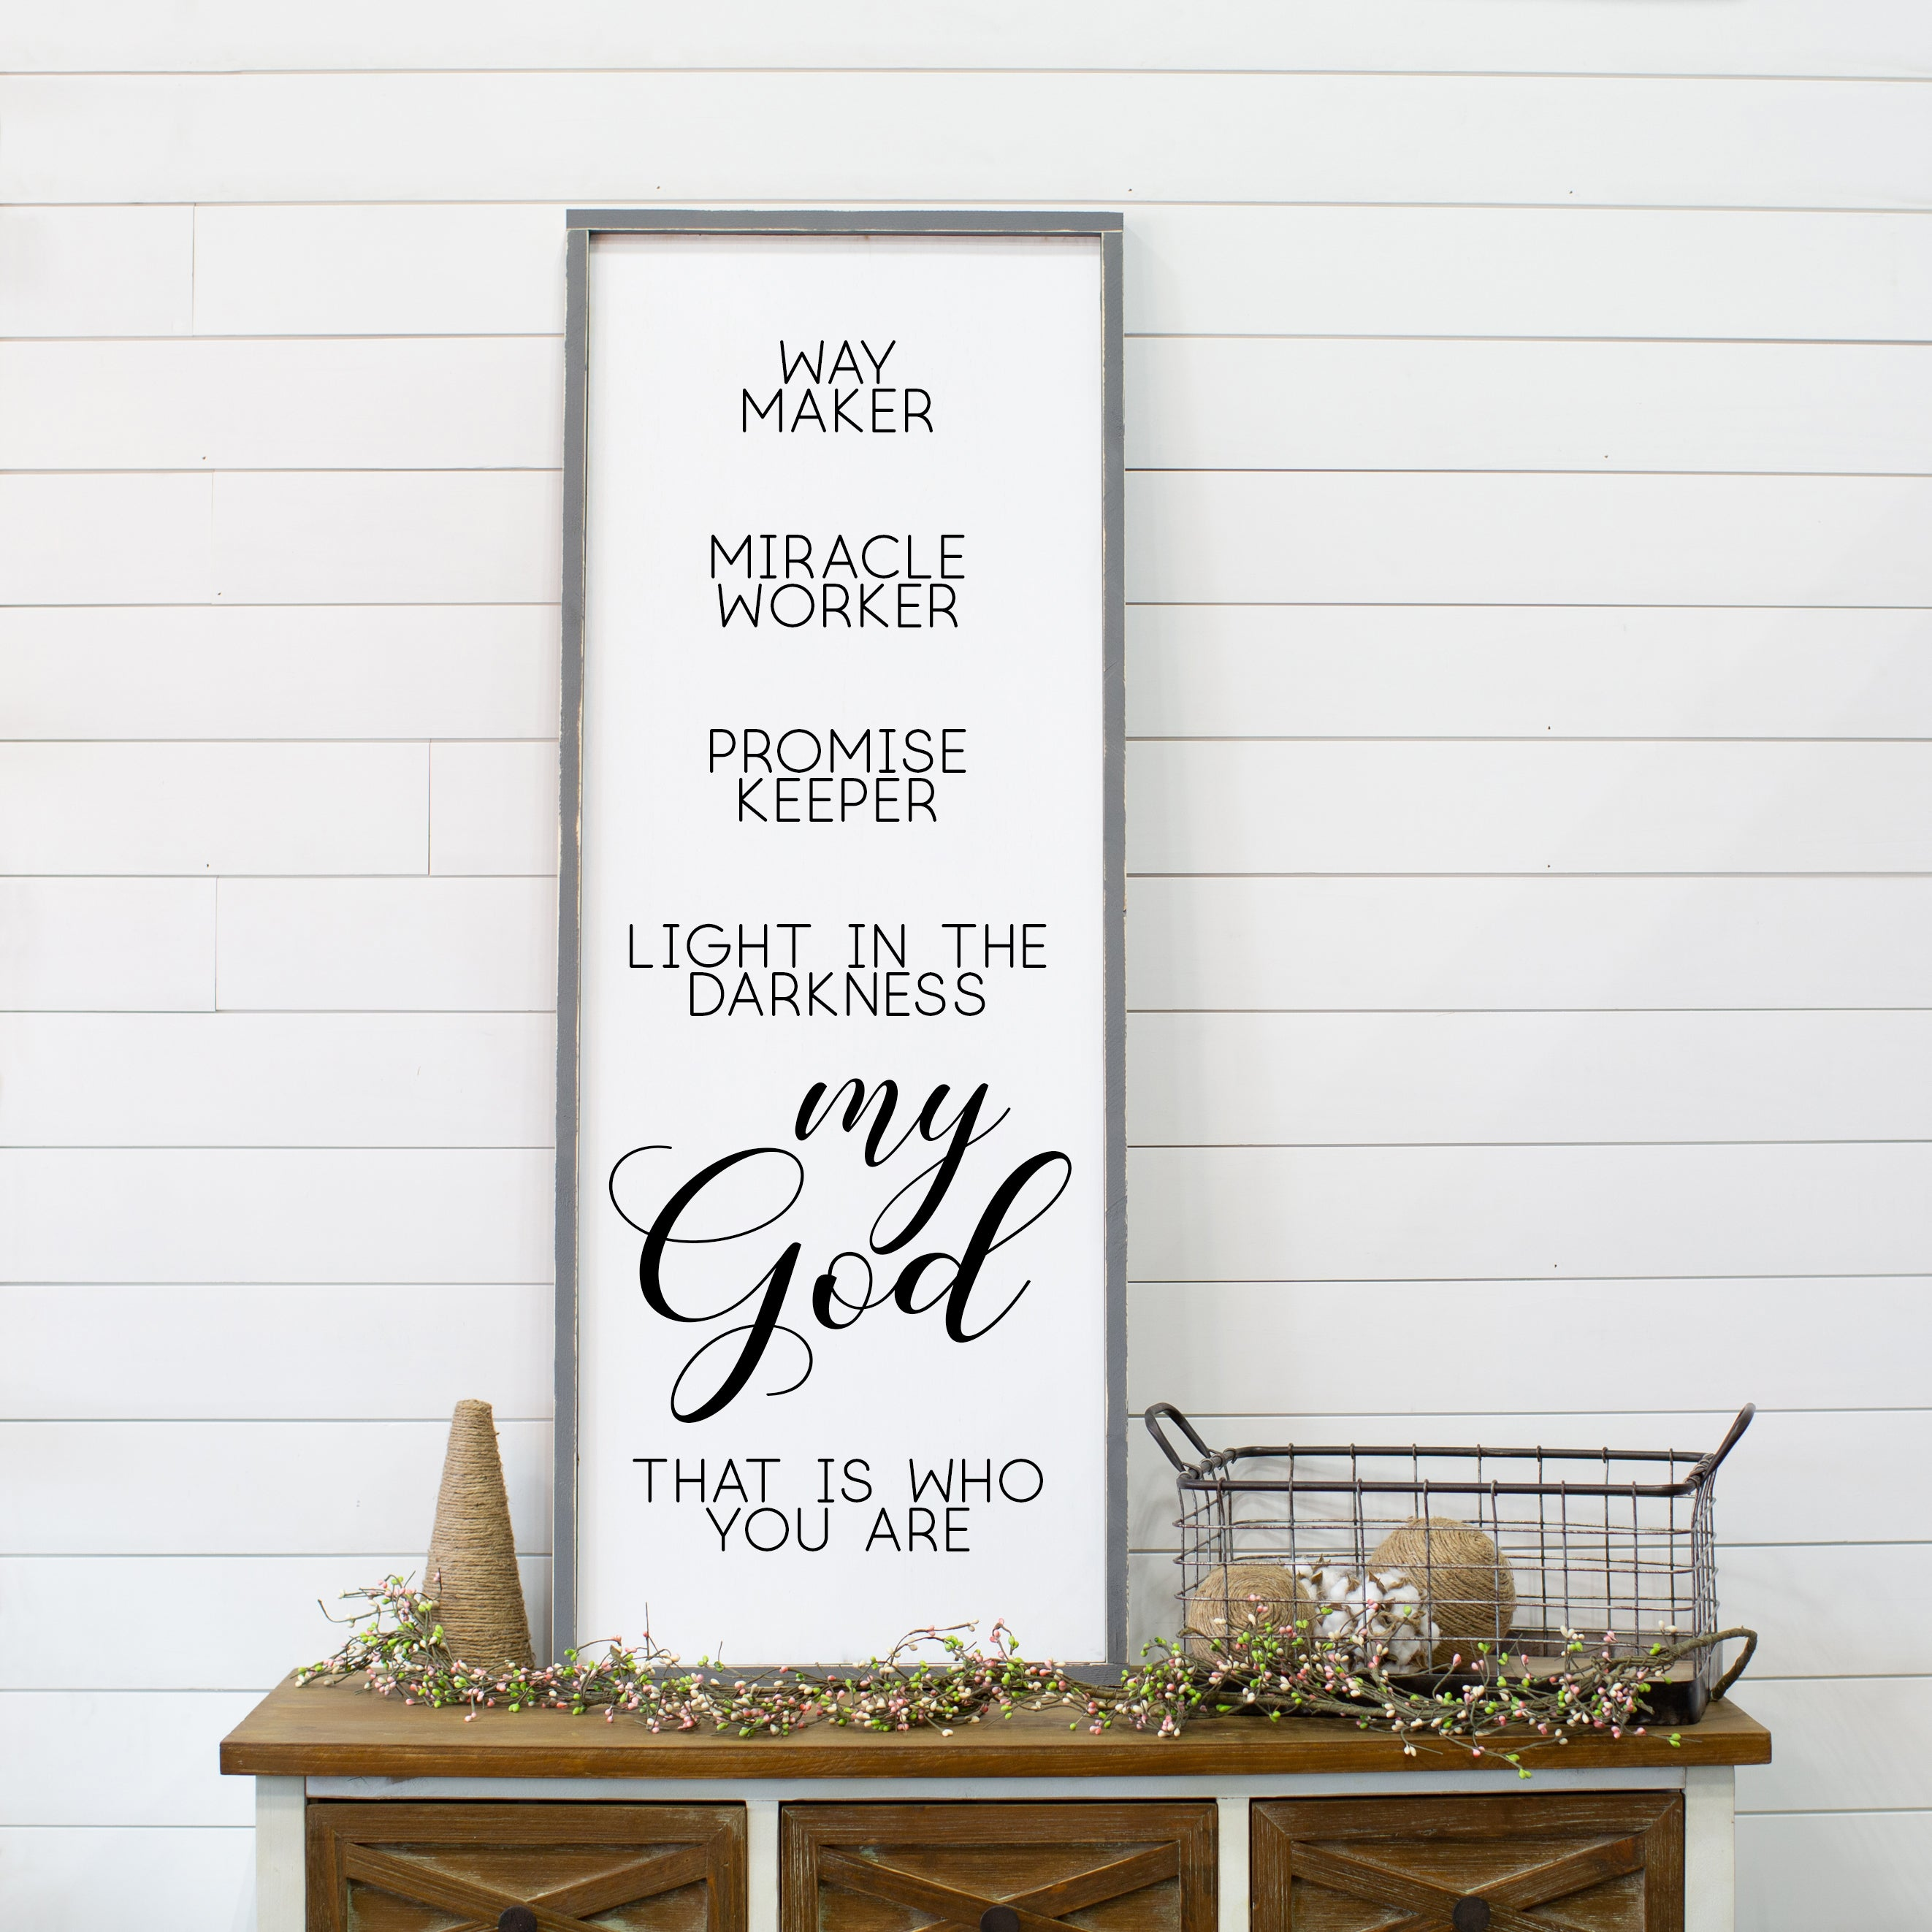 Way Maker, Miracle Worker, My God Large Framed Wood Sign